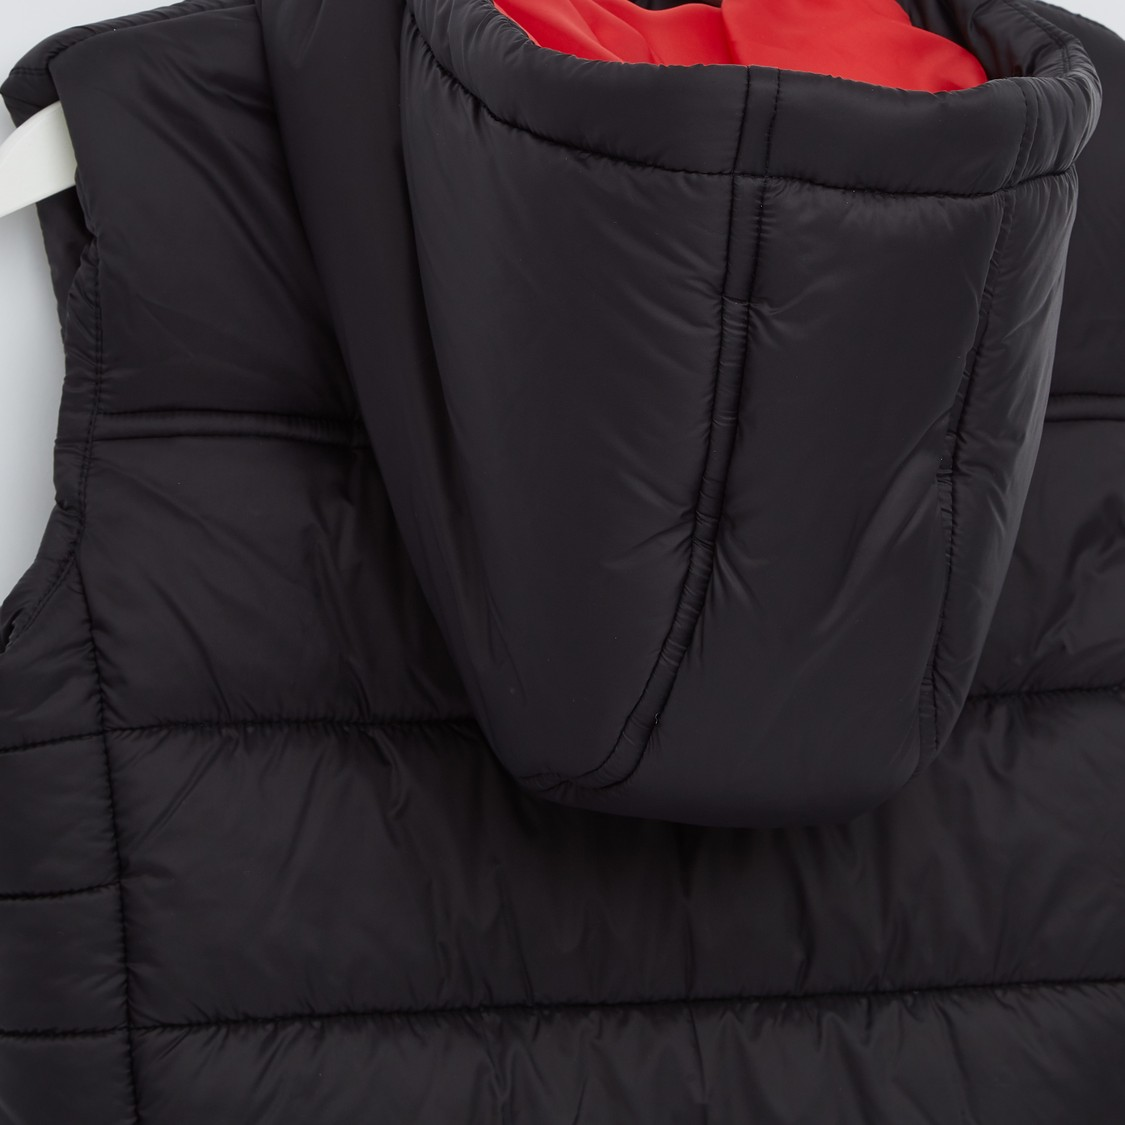 Quilted Sleeveless Gilet with Mickey Mouse Applique and Zip Closure